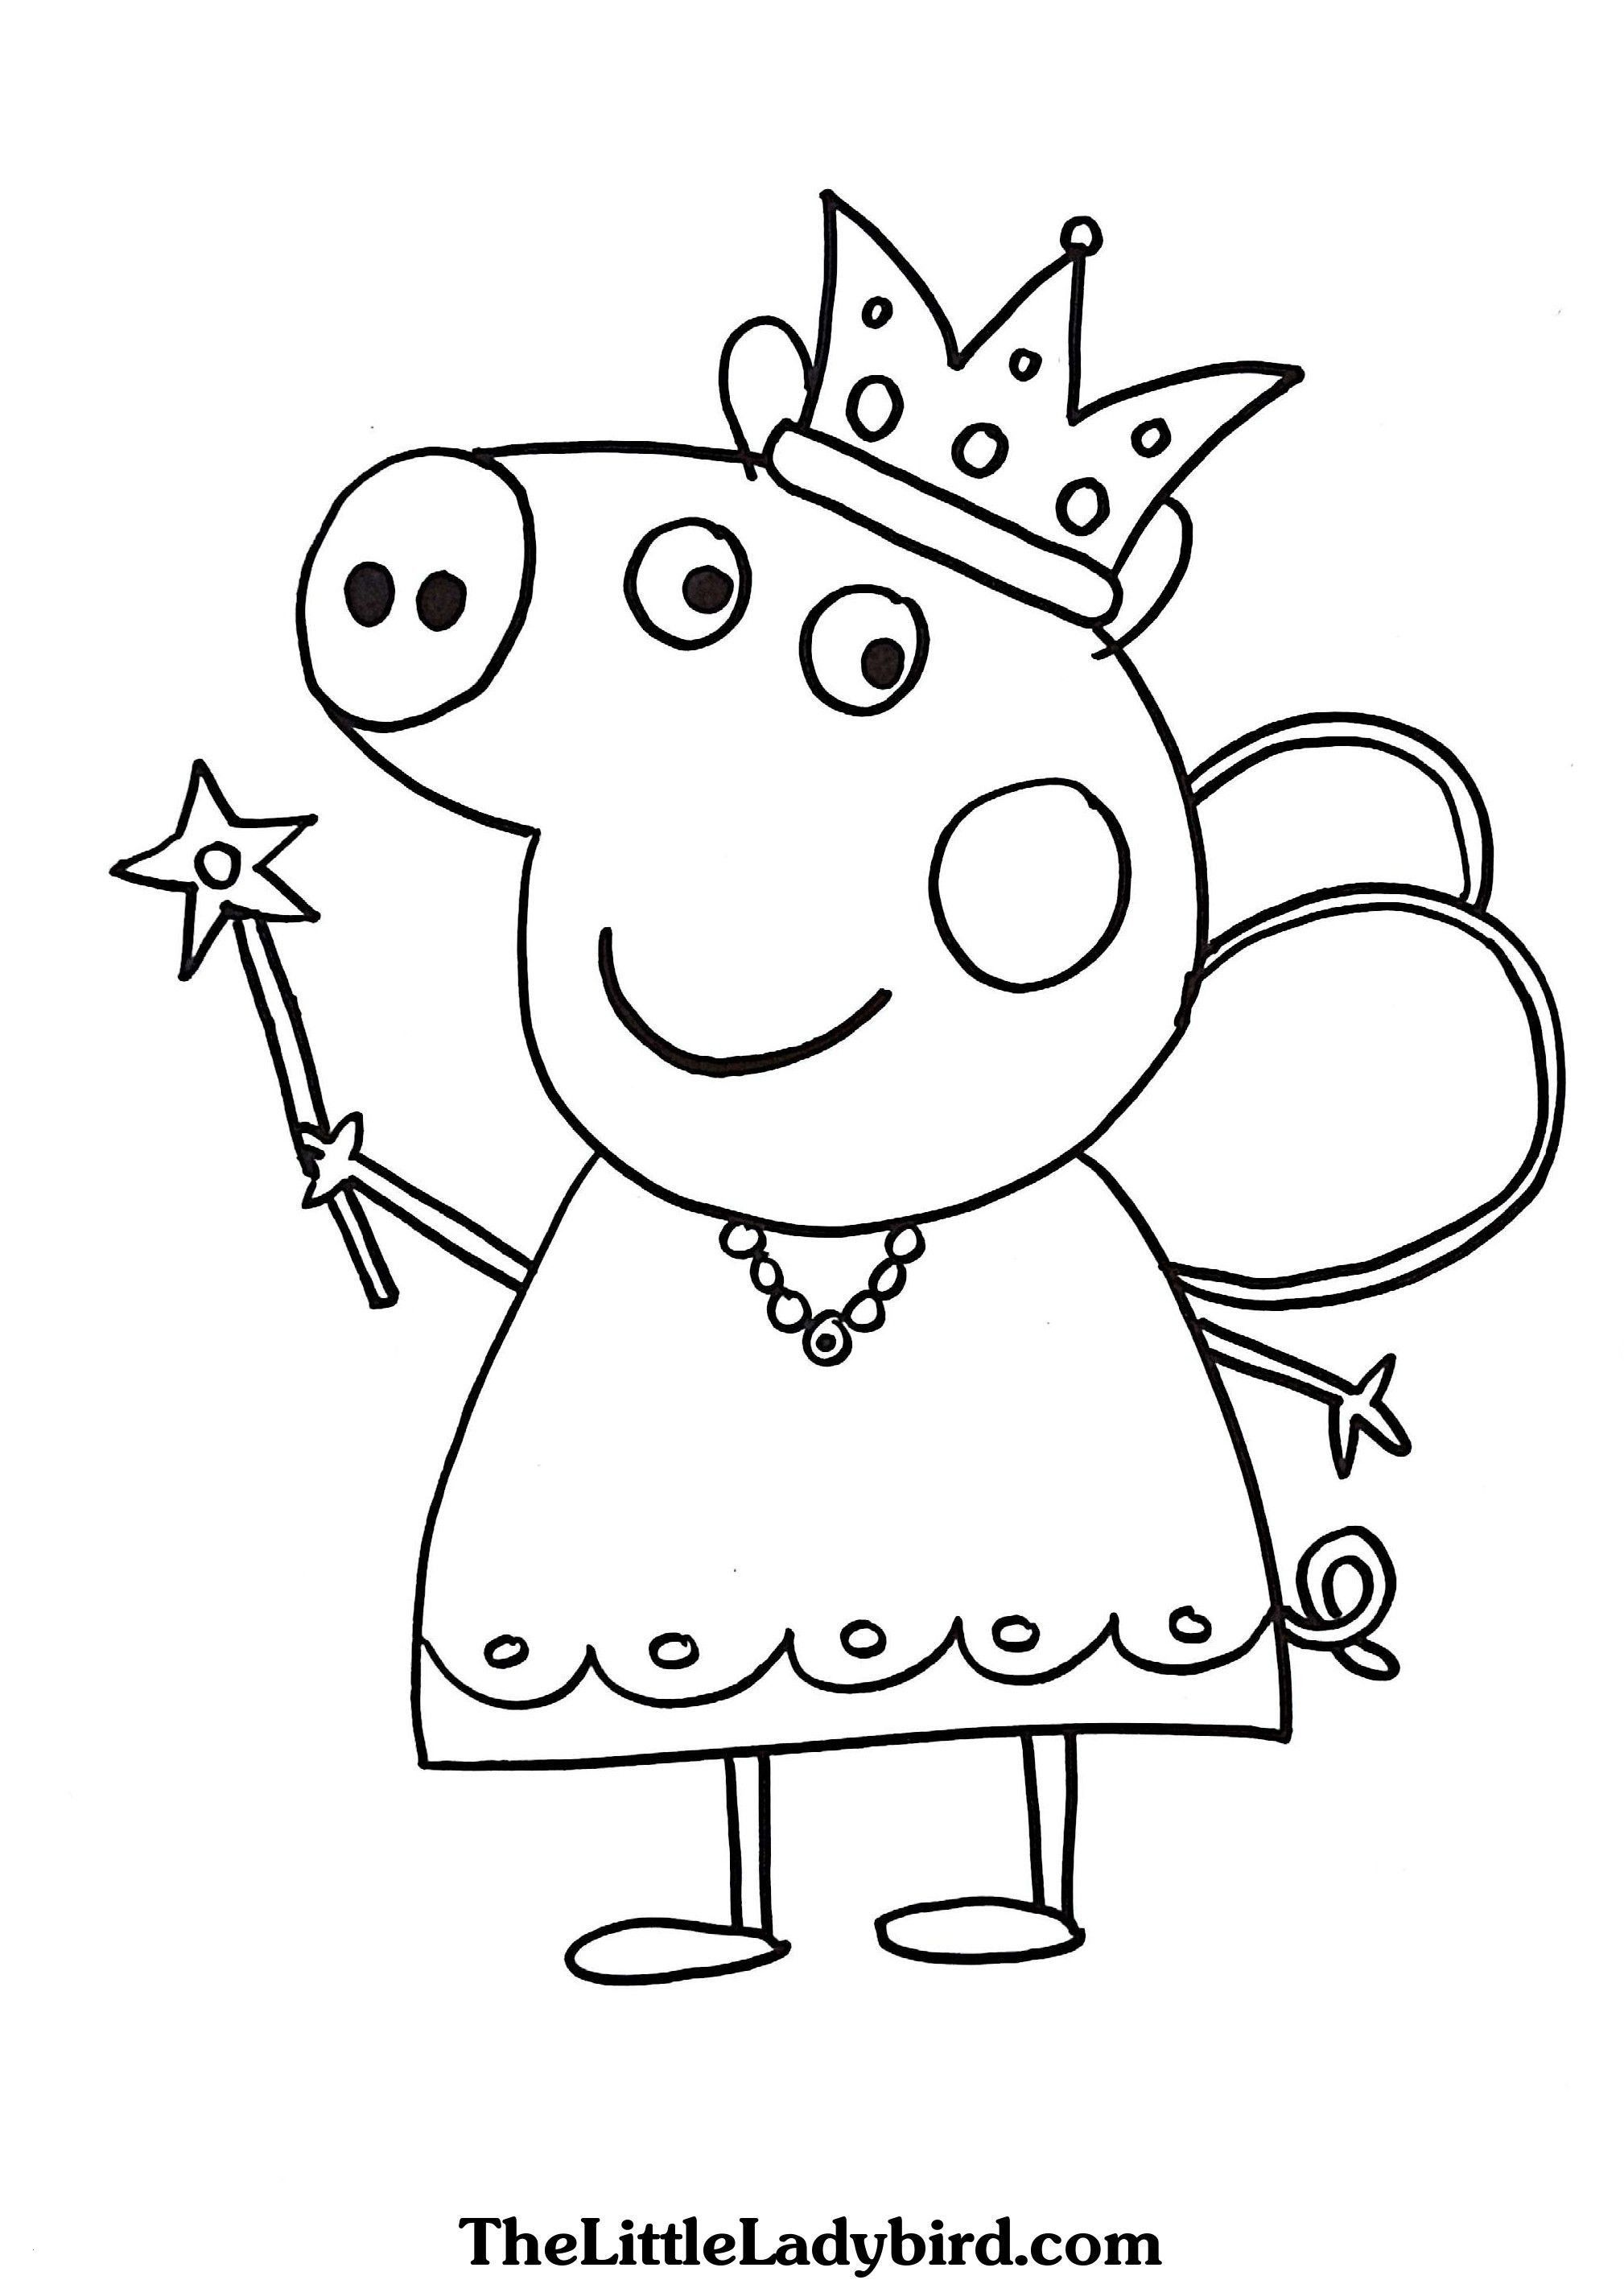 Peppa Pig Coloring In Peppa Pig Coloring Pages Halloween